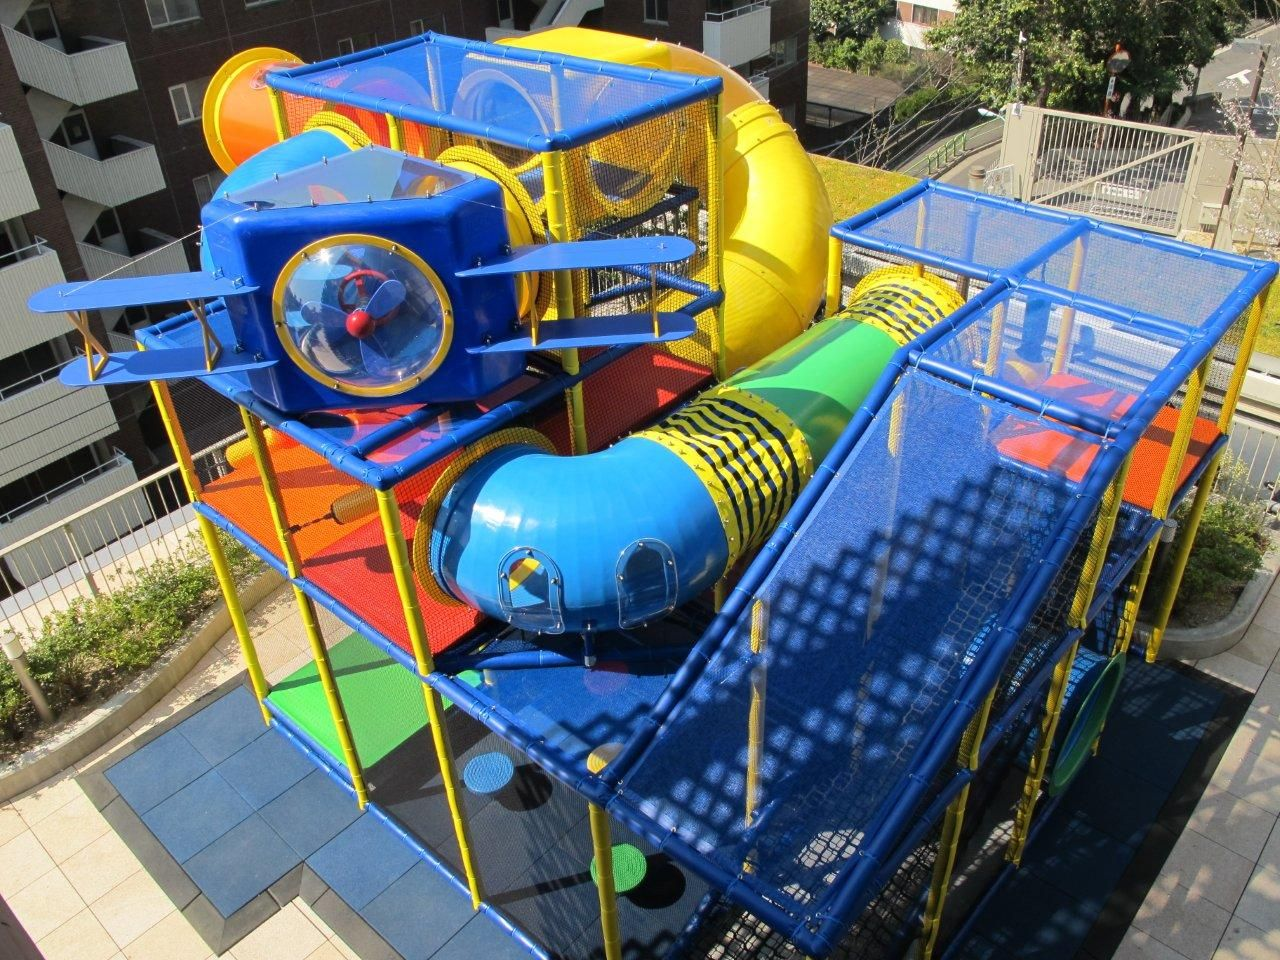 Indoor Playground Events In A Play Structure: At The Top Of This Playground  We Have